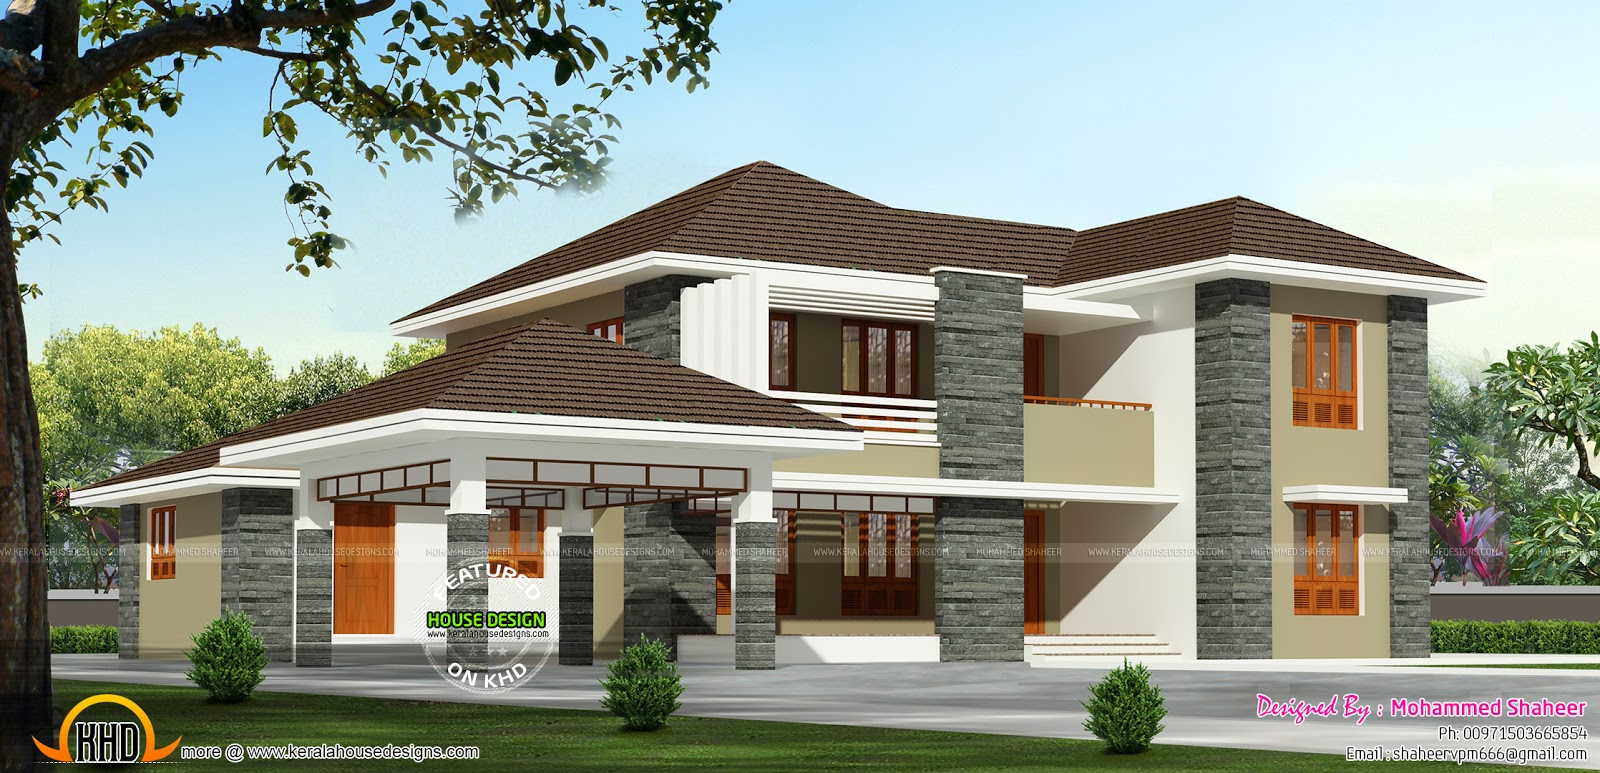 2000 square foot house kerala home design and floor plans for Farmhouse plans under 2000 sq ft